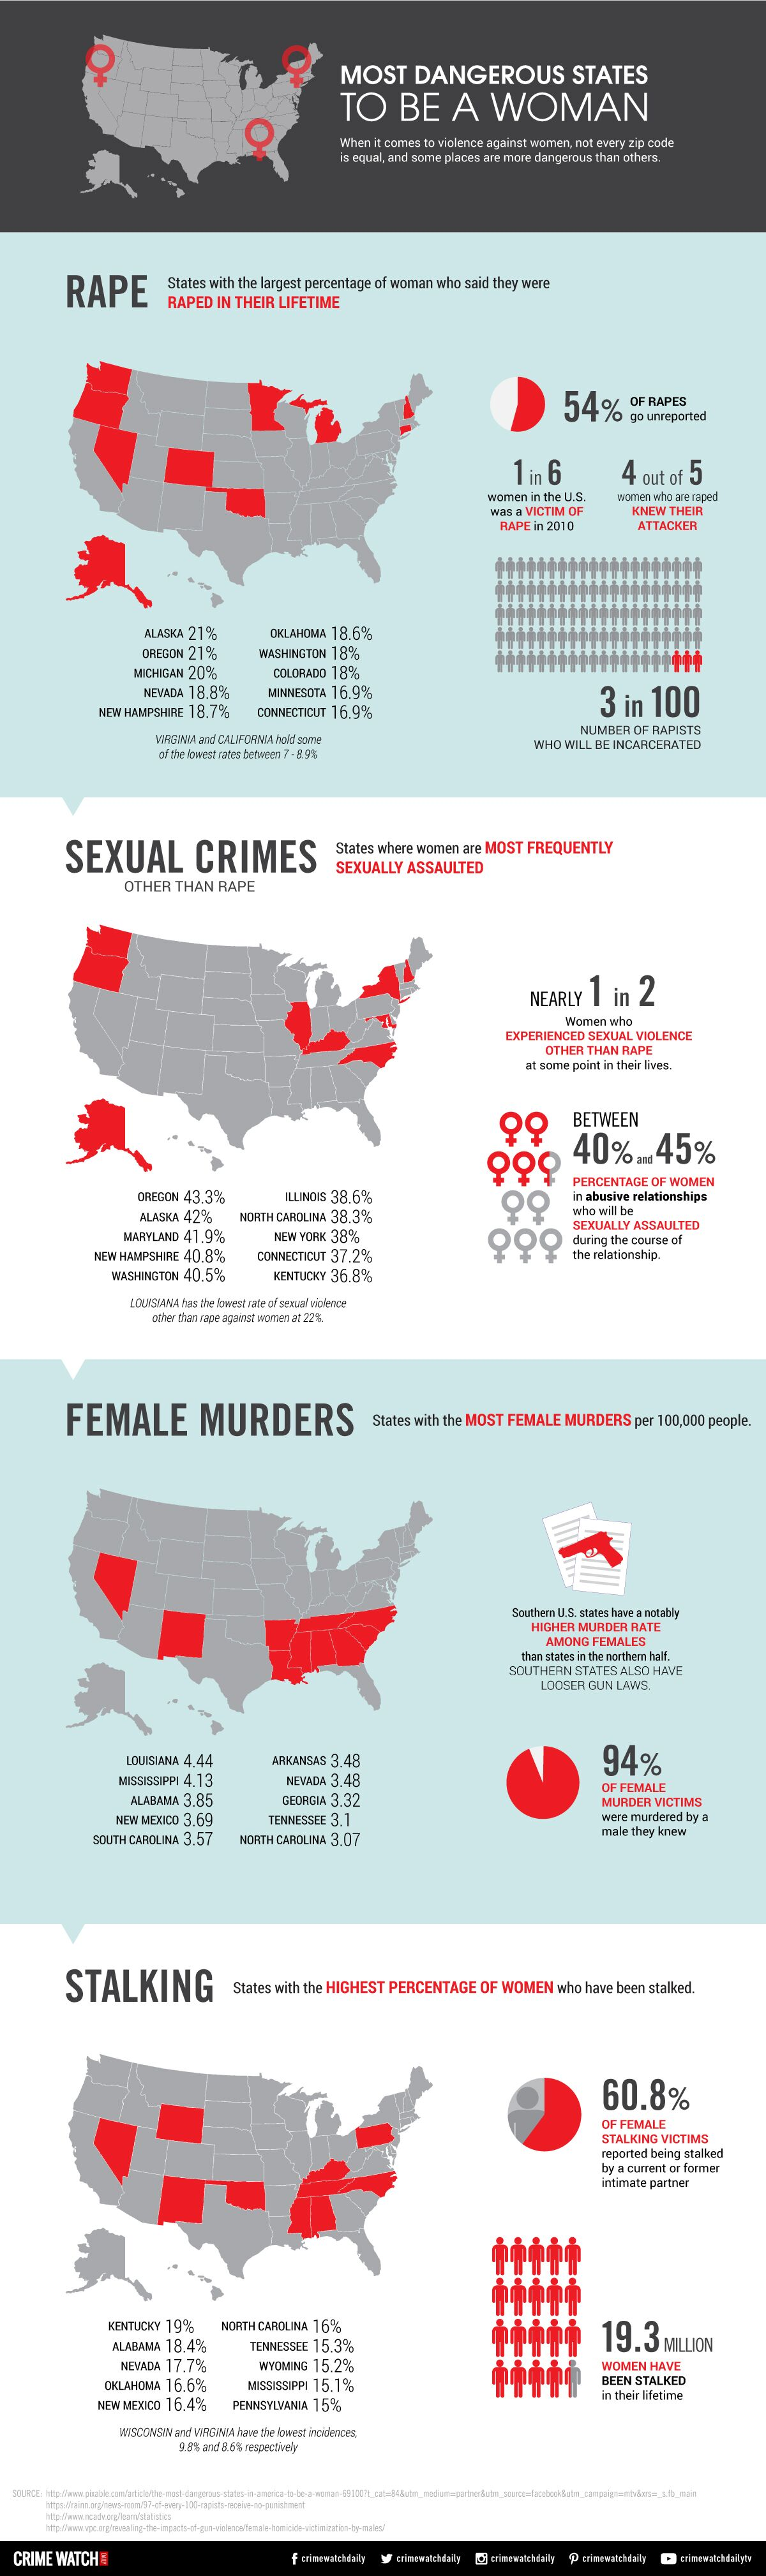 most-dangerous-states-to-be-a-woman